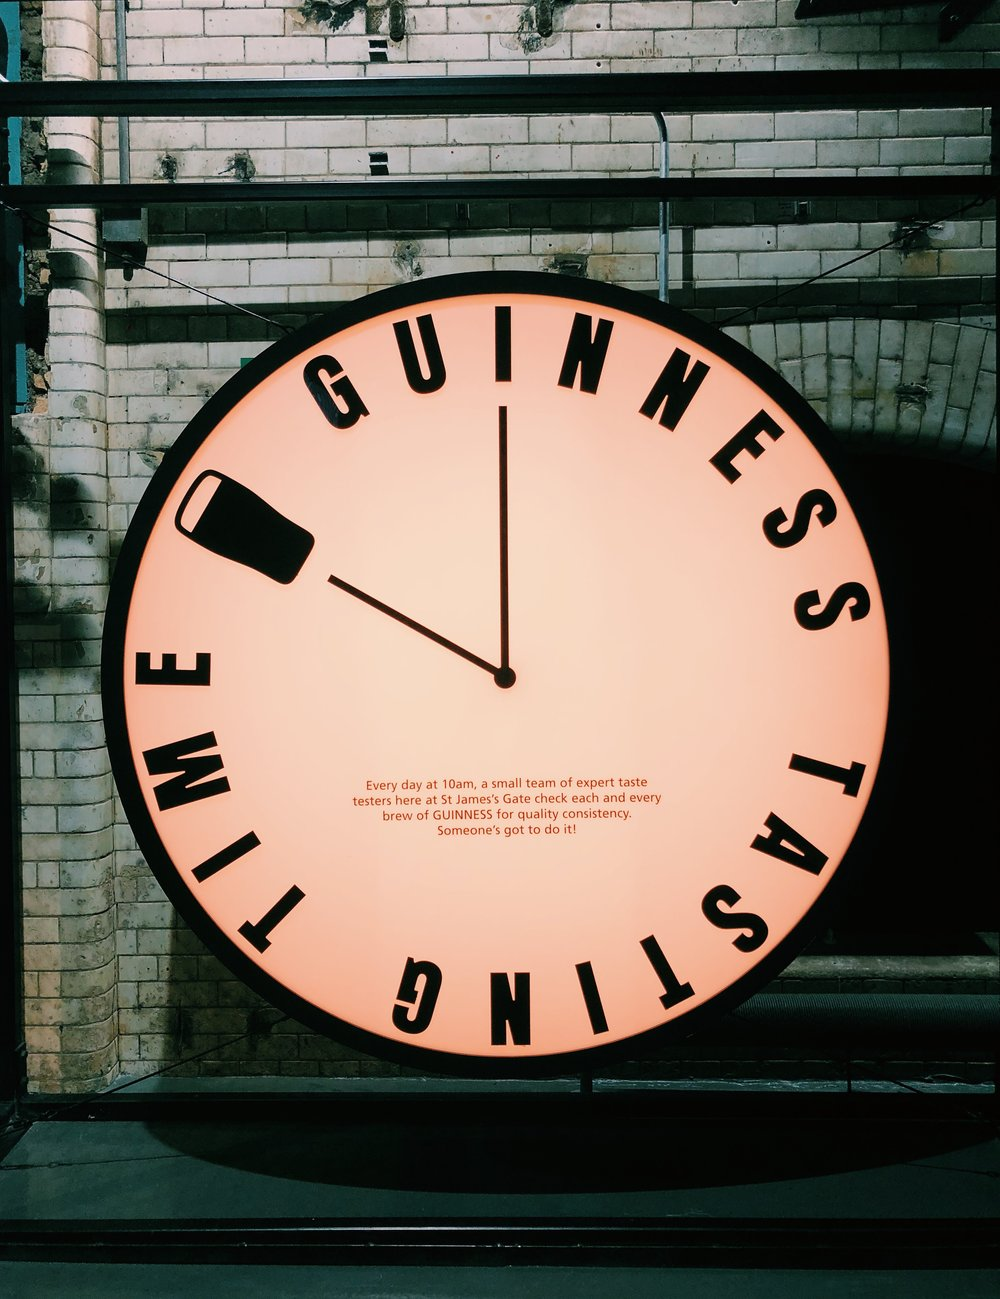 Guinness-Storehouse-Blog-Vintage-Tea-Tour